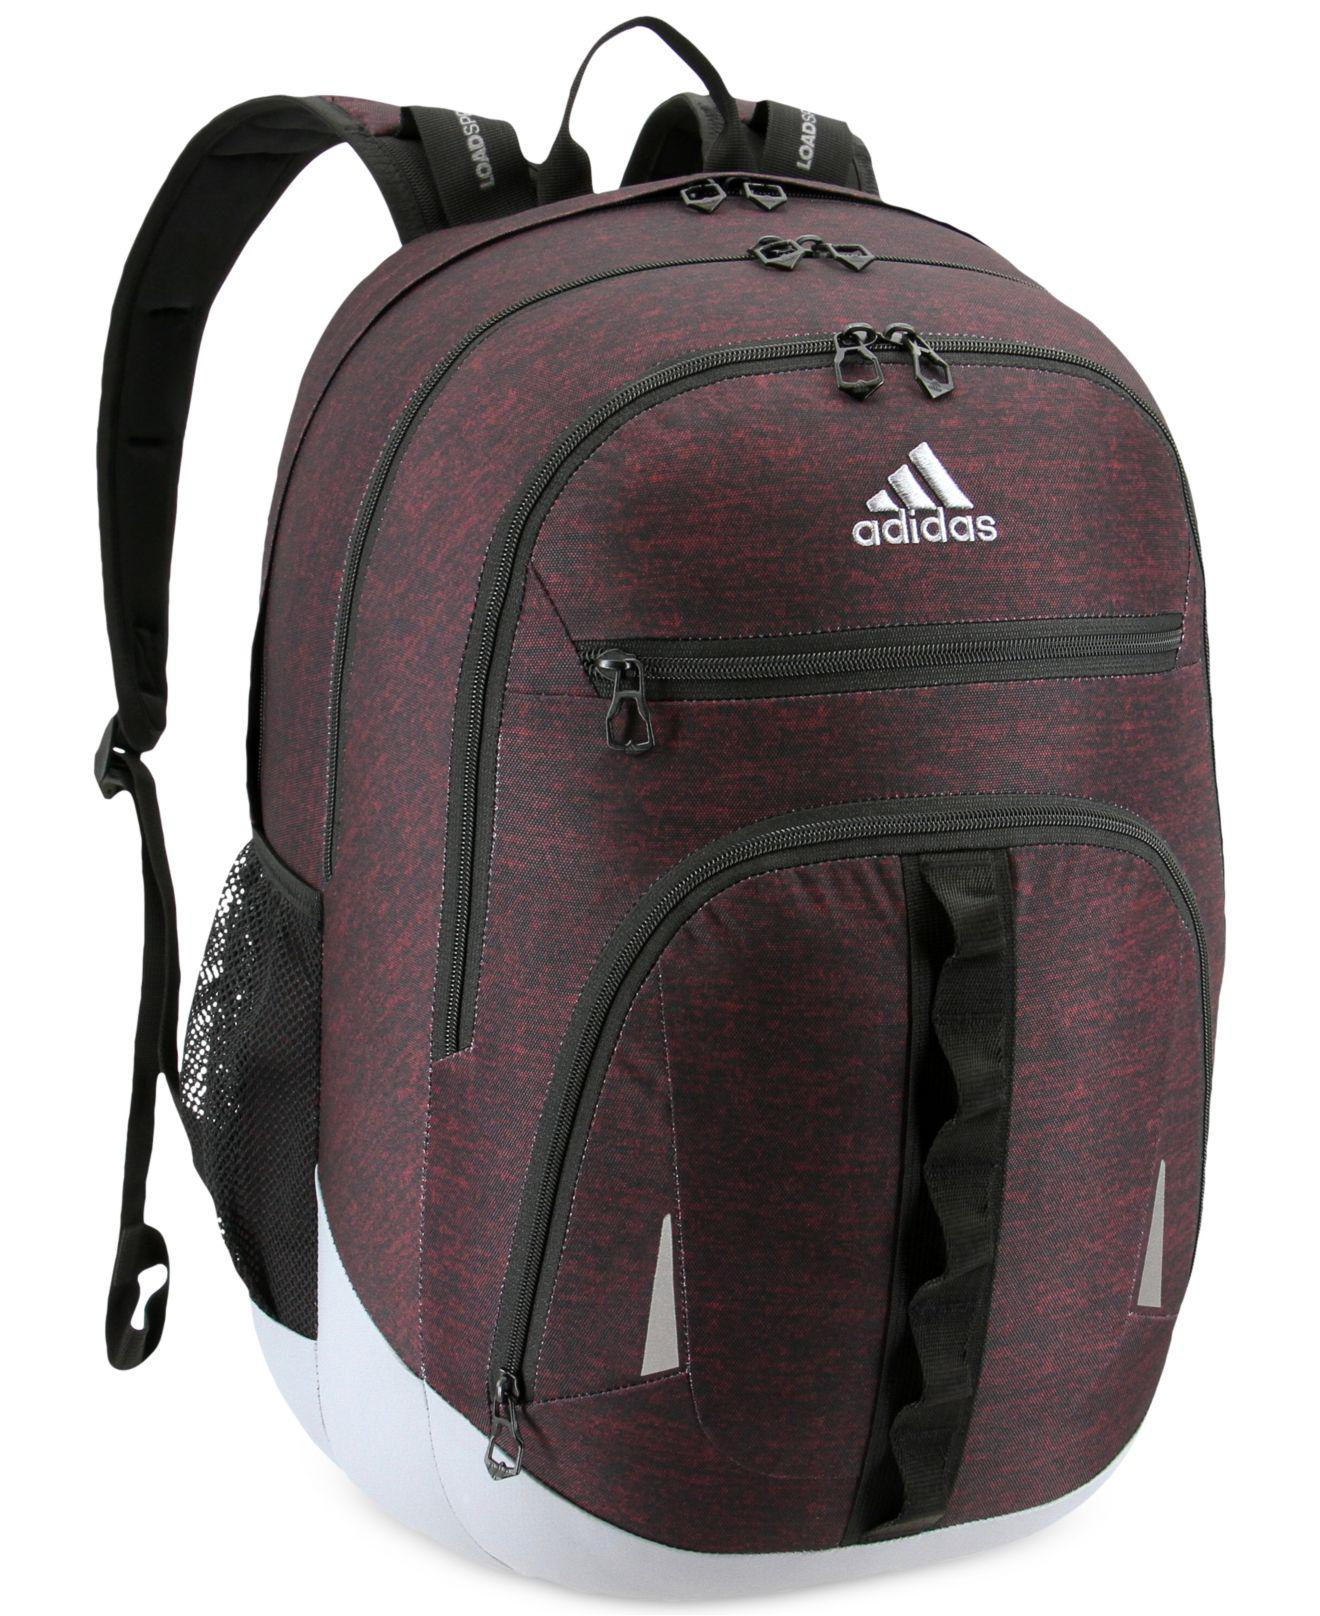 ... Adidas - Multicolor Prime Iv Backpack for Men - Lyst. View fullscreen  online retailer cd0f0 ... 18b32f3f1abe7